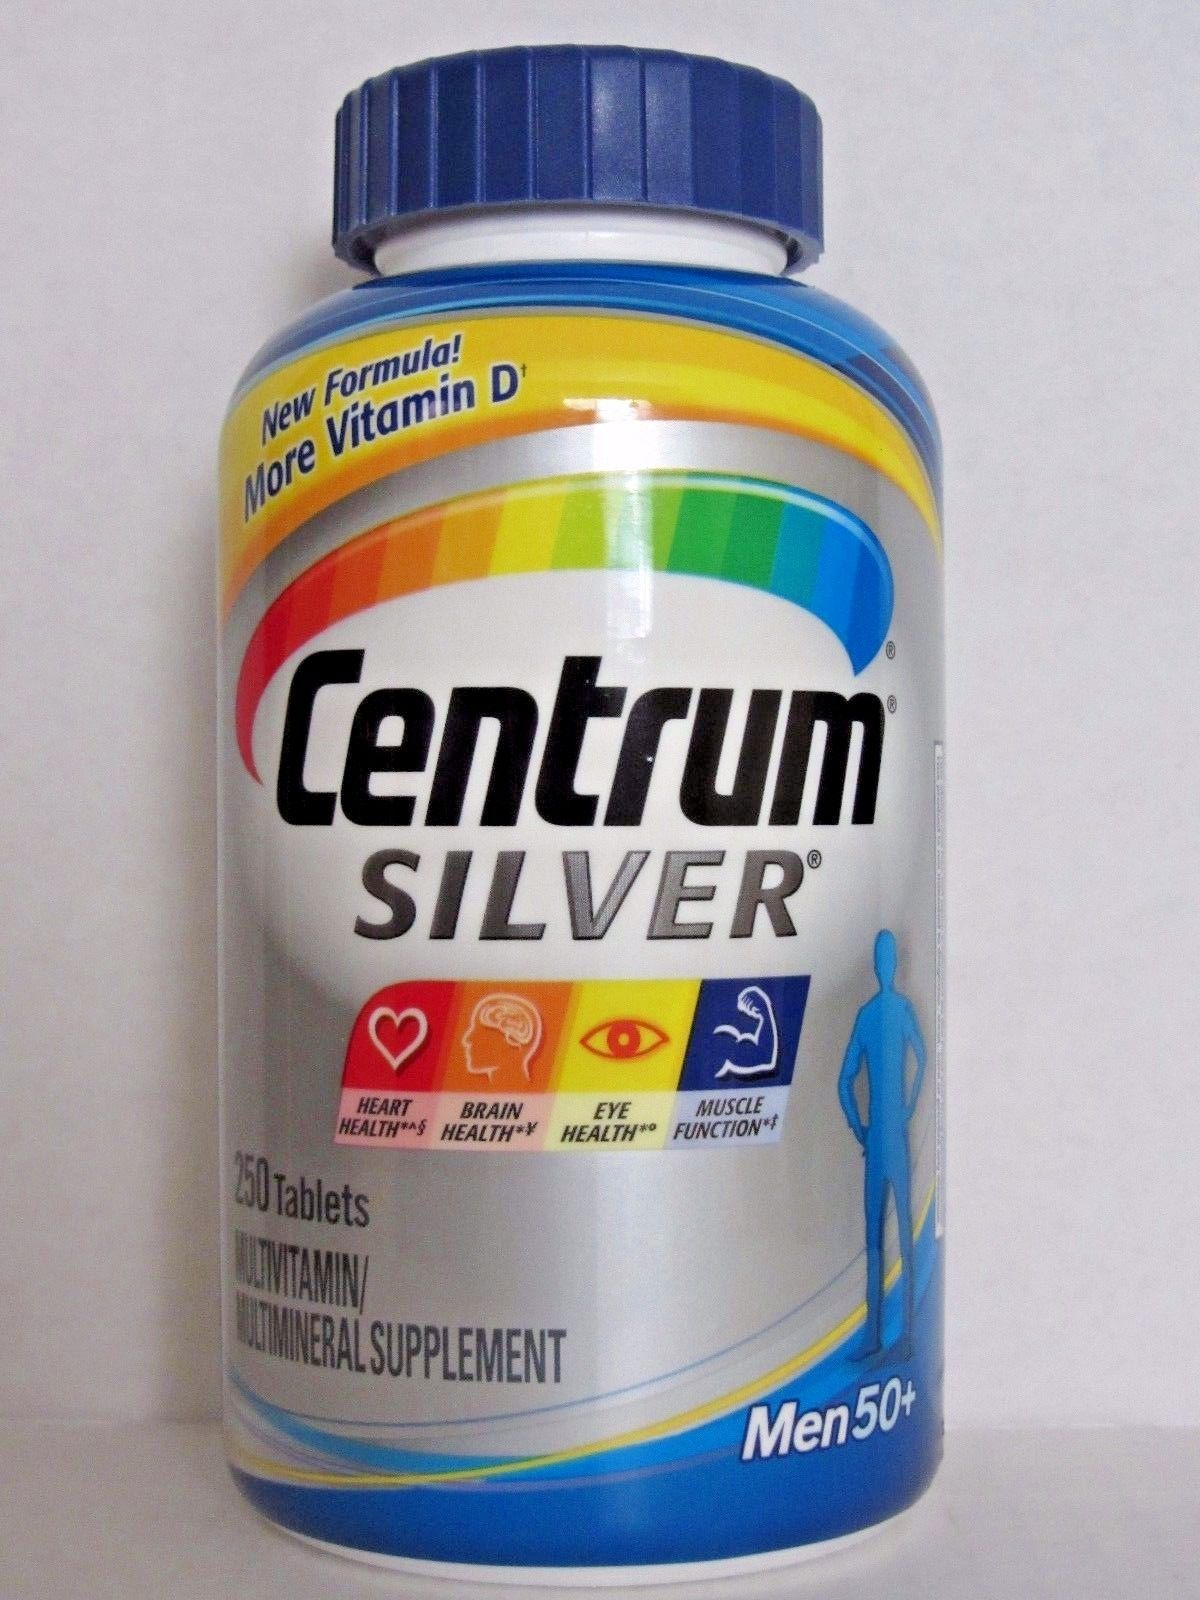 Centrum Silver Multivitamin Multi Mineral Supplement For Men 50 250 Tablets Sold By Beauty Me Rakuten Com Shop